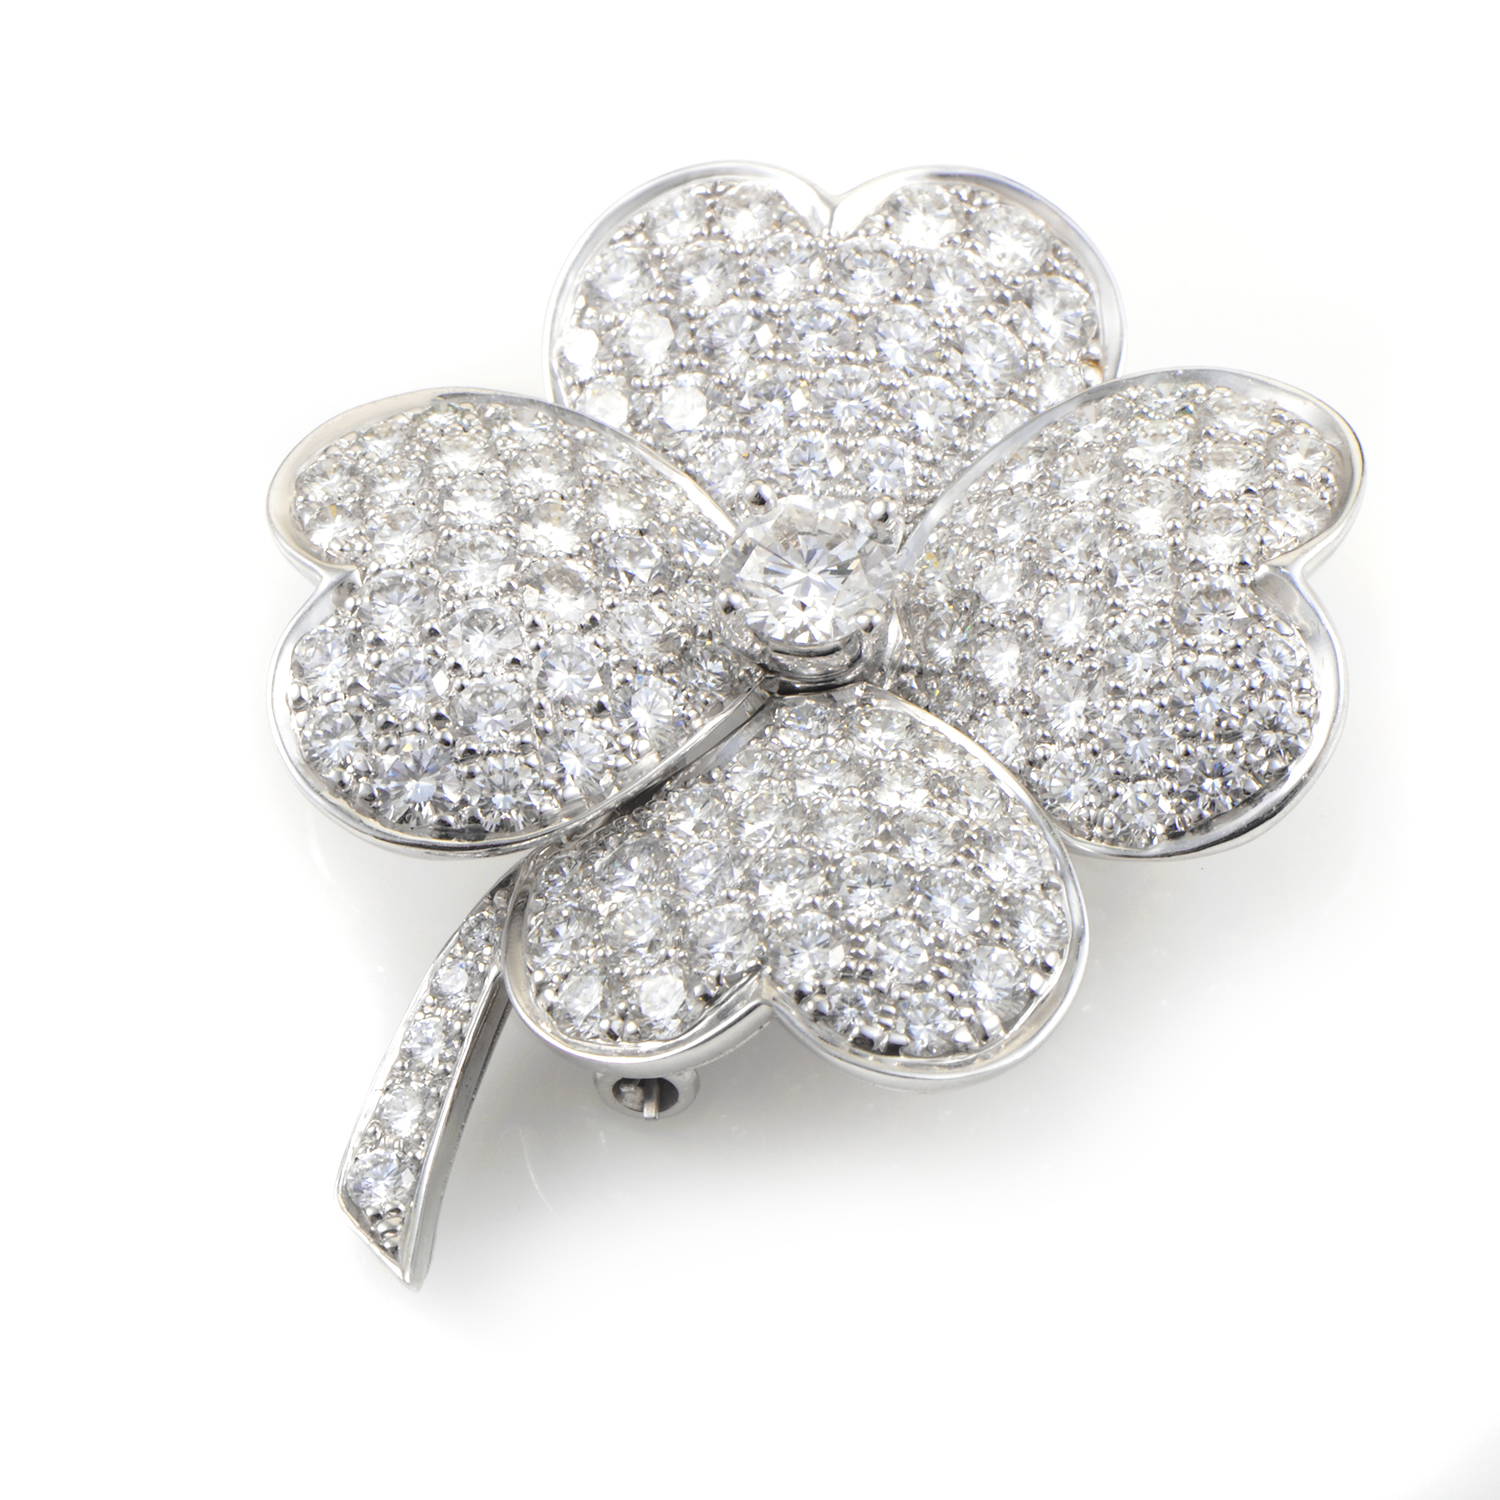 Van Cleef & Arpels Cosmos Large 18K White Gold Diamond Pave Brooch